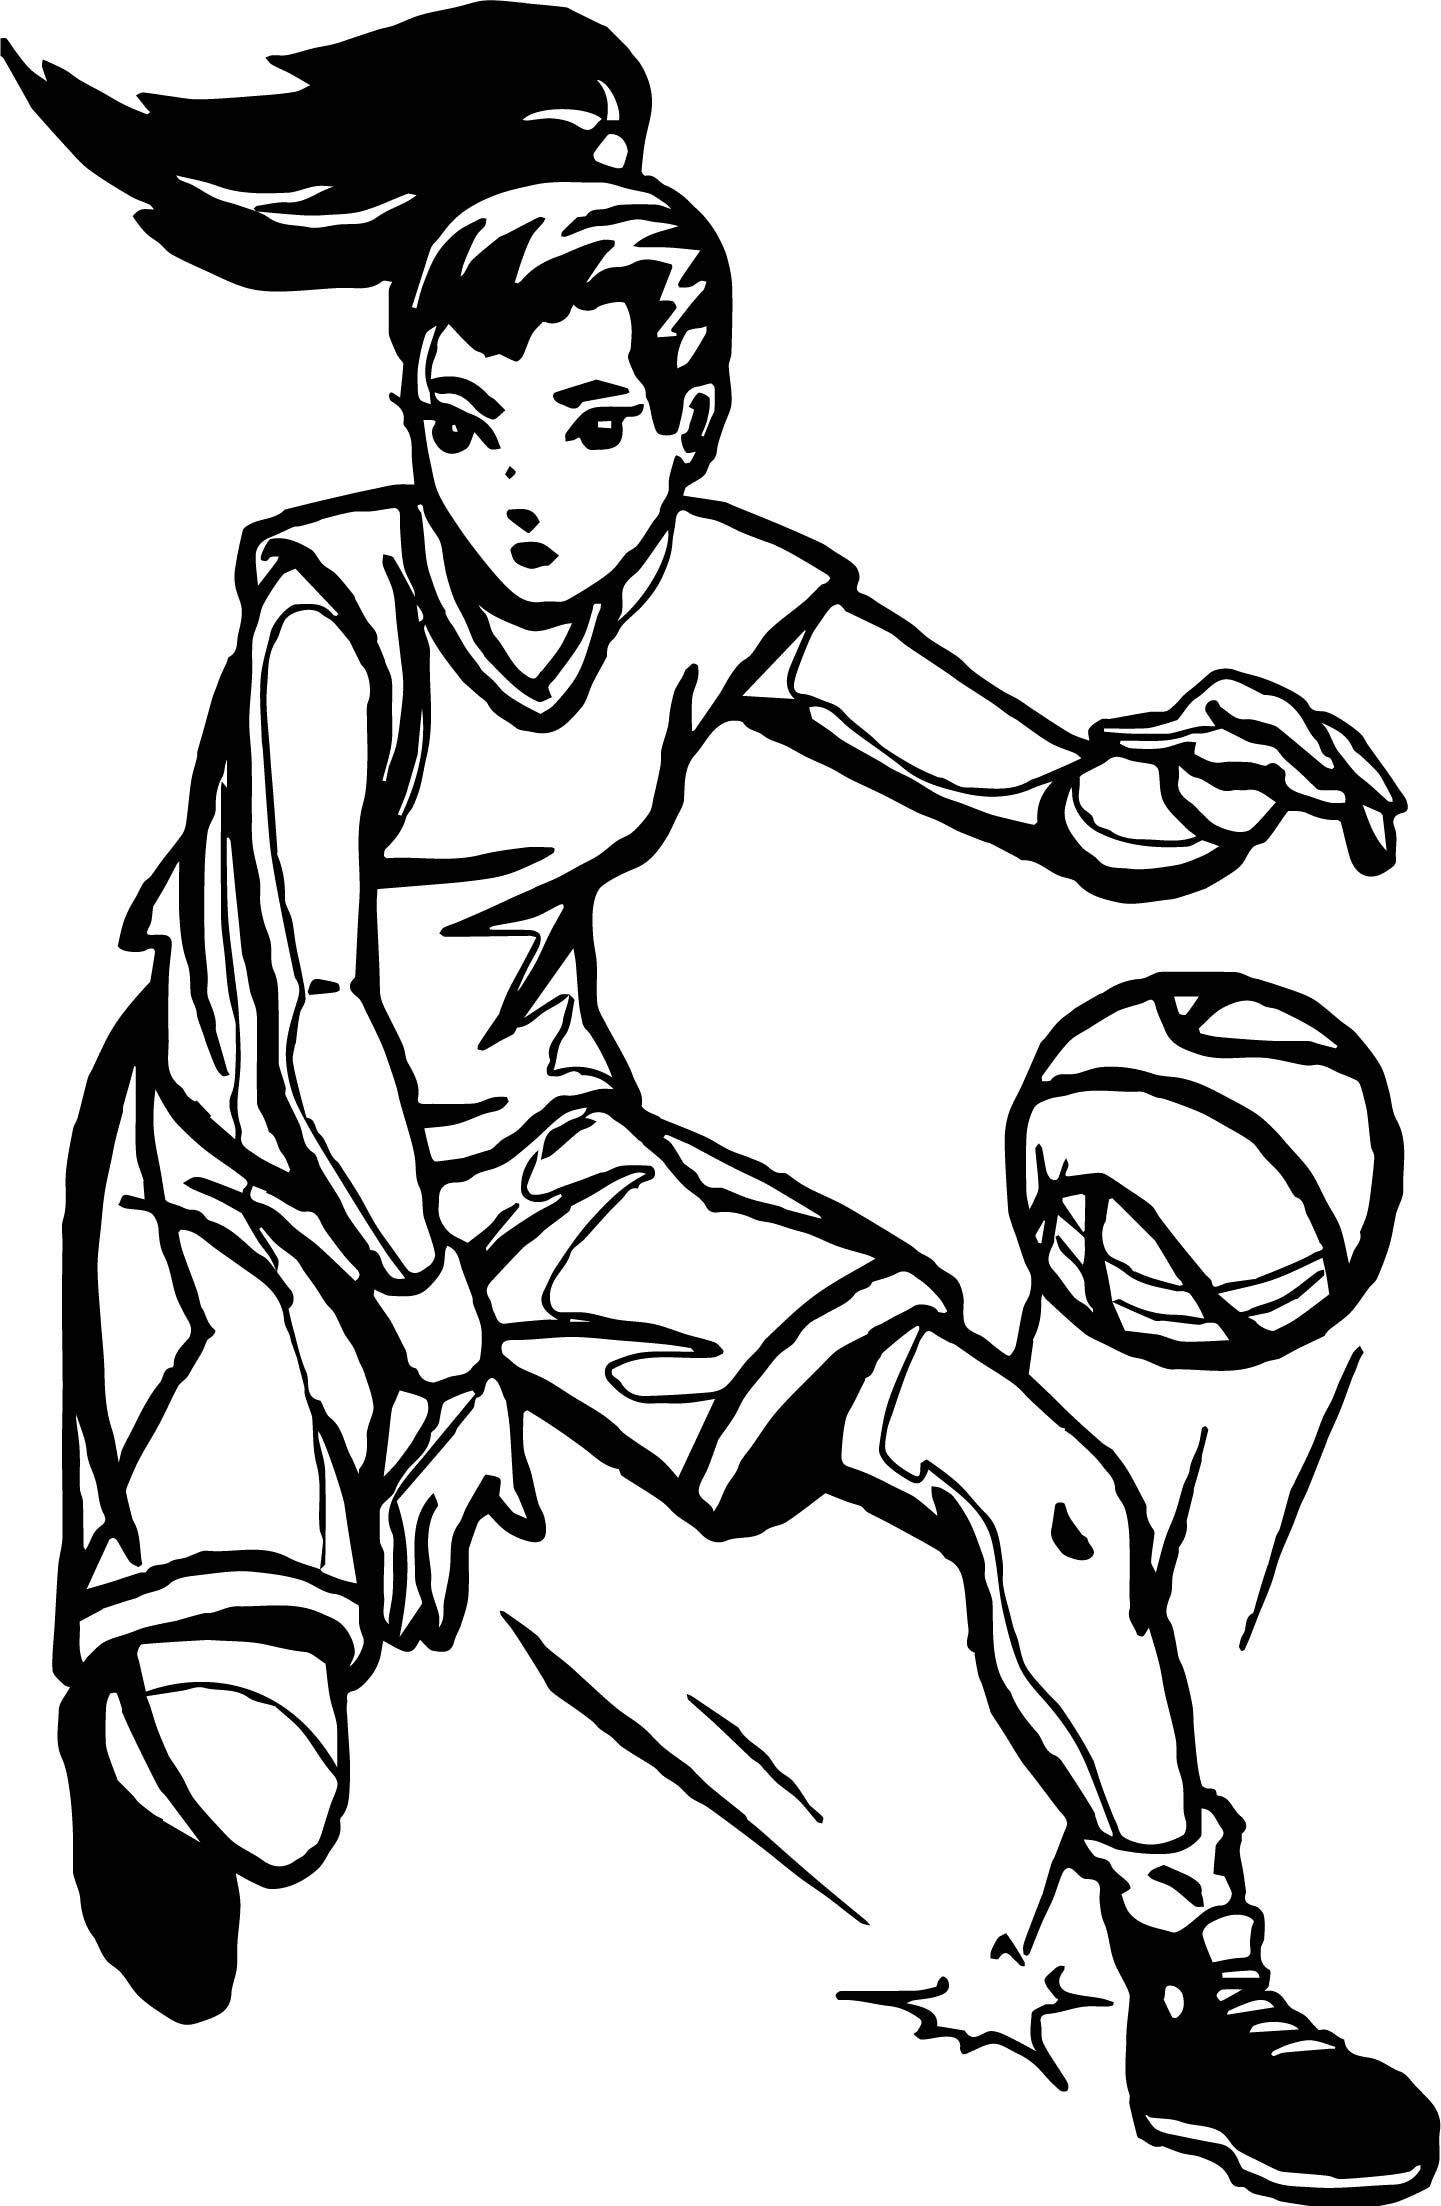 8 New Ideas Basketball Coloring Pages In 2021 Sports Coloring Pages Coloring Pages Coloring Pages Inspirational